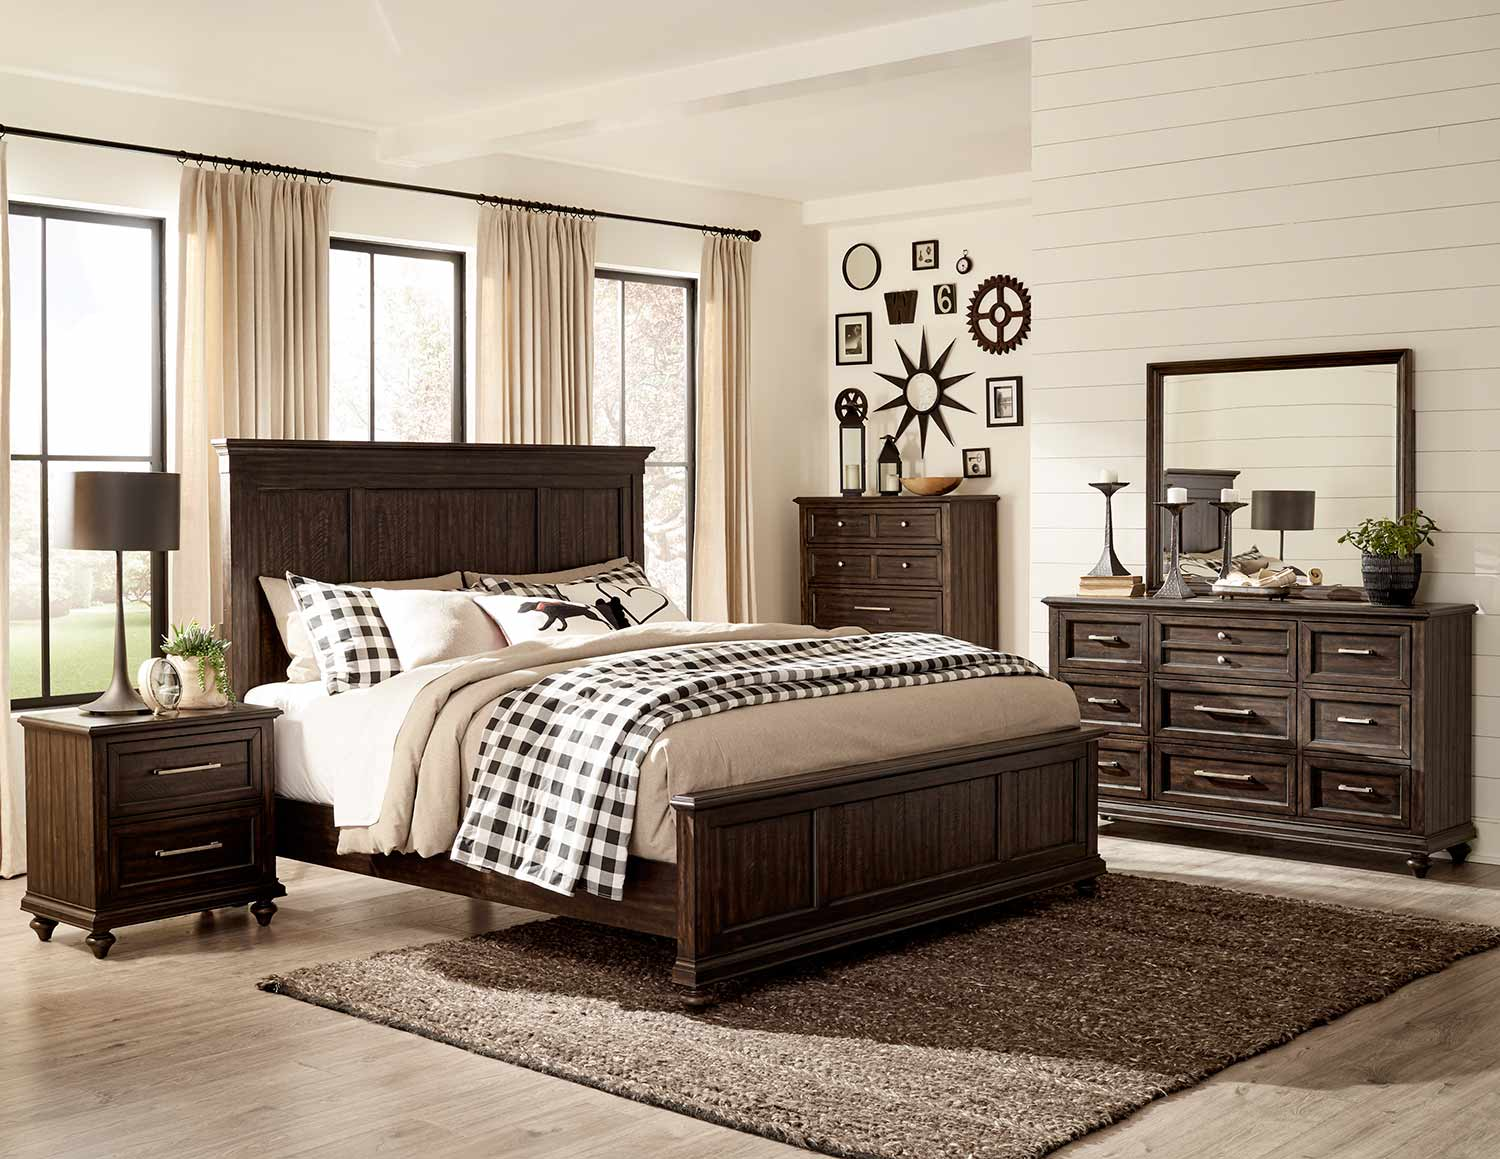 Homelegance Cardano Bedroom Set - Driftwood Charcoal over Acacia Solids and Veneers